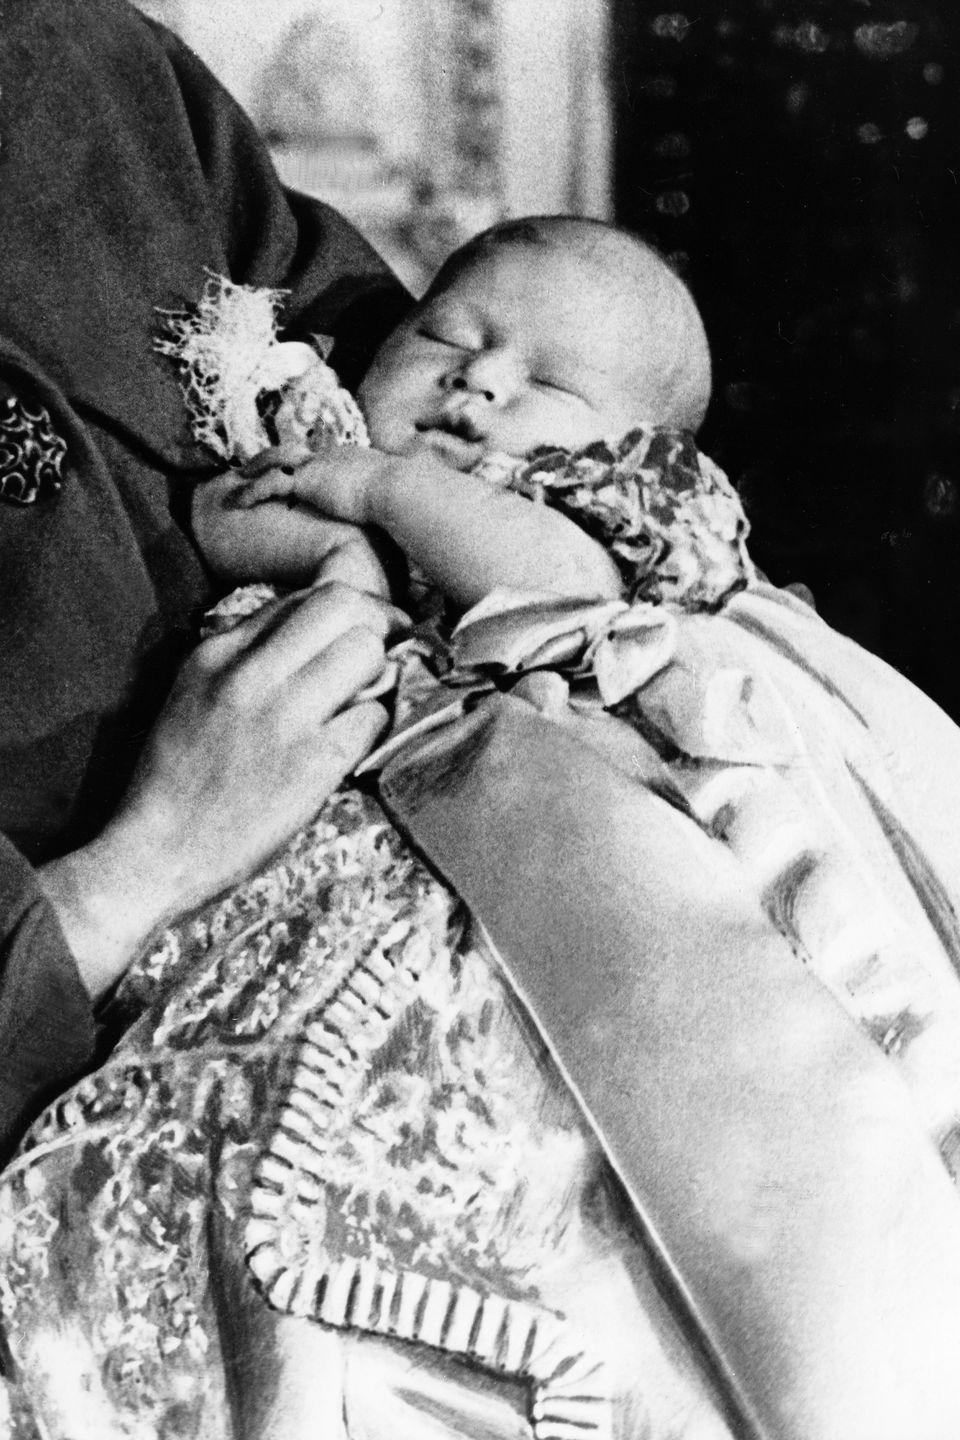 <p> A sleeping Charles is held by his mom, Queen Elizabeth II, at just one month old. The Prince was born on November 14, 1948, at Buckingham Palace.</p>